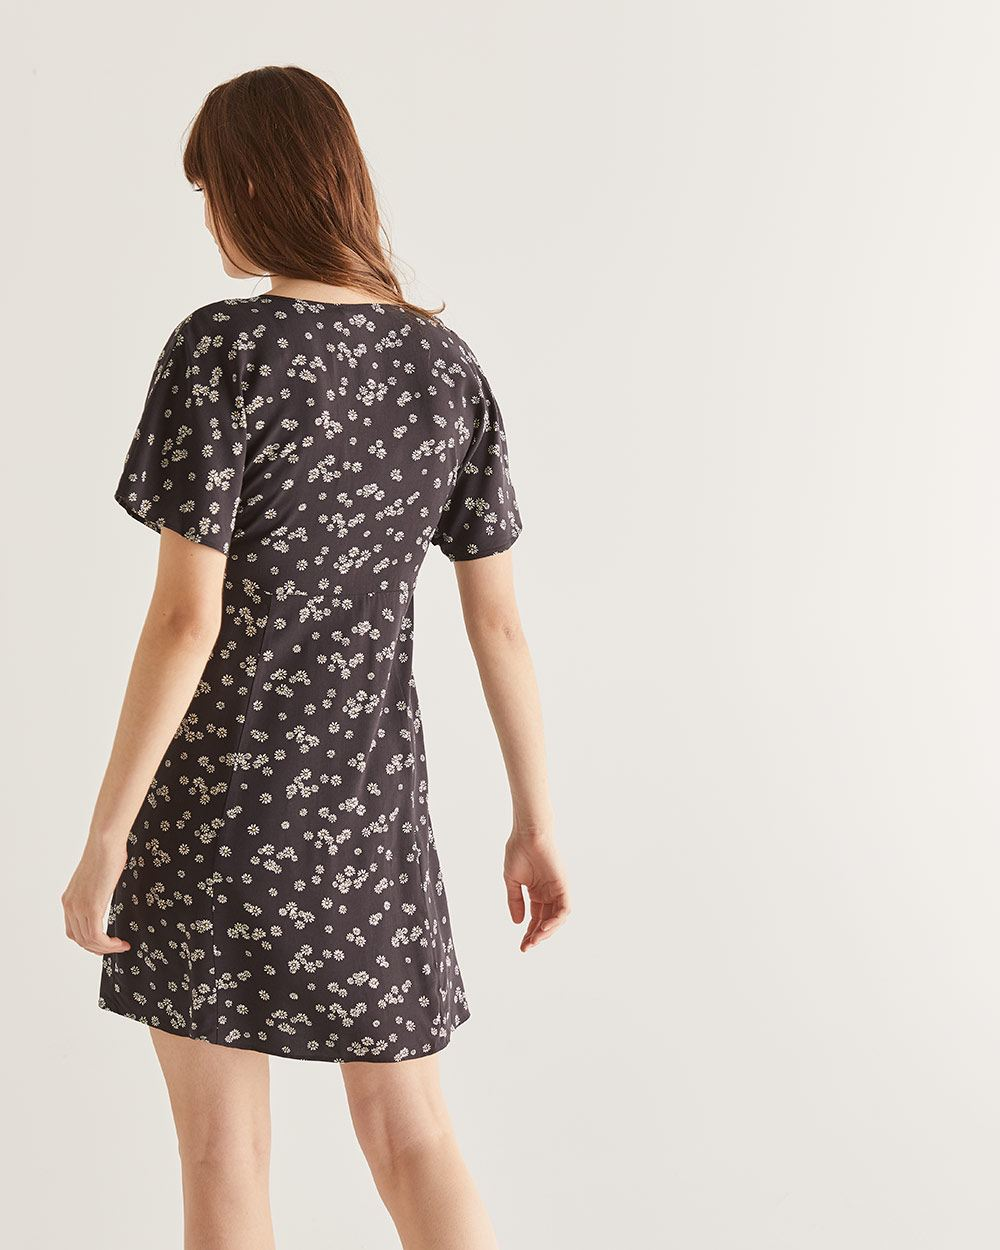 Floral Print Buttoned-Down Dress